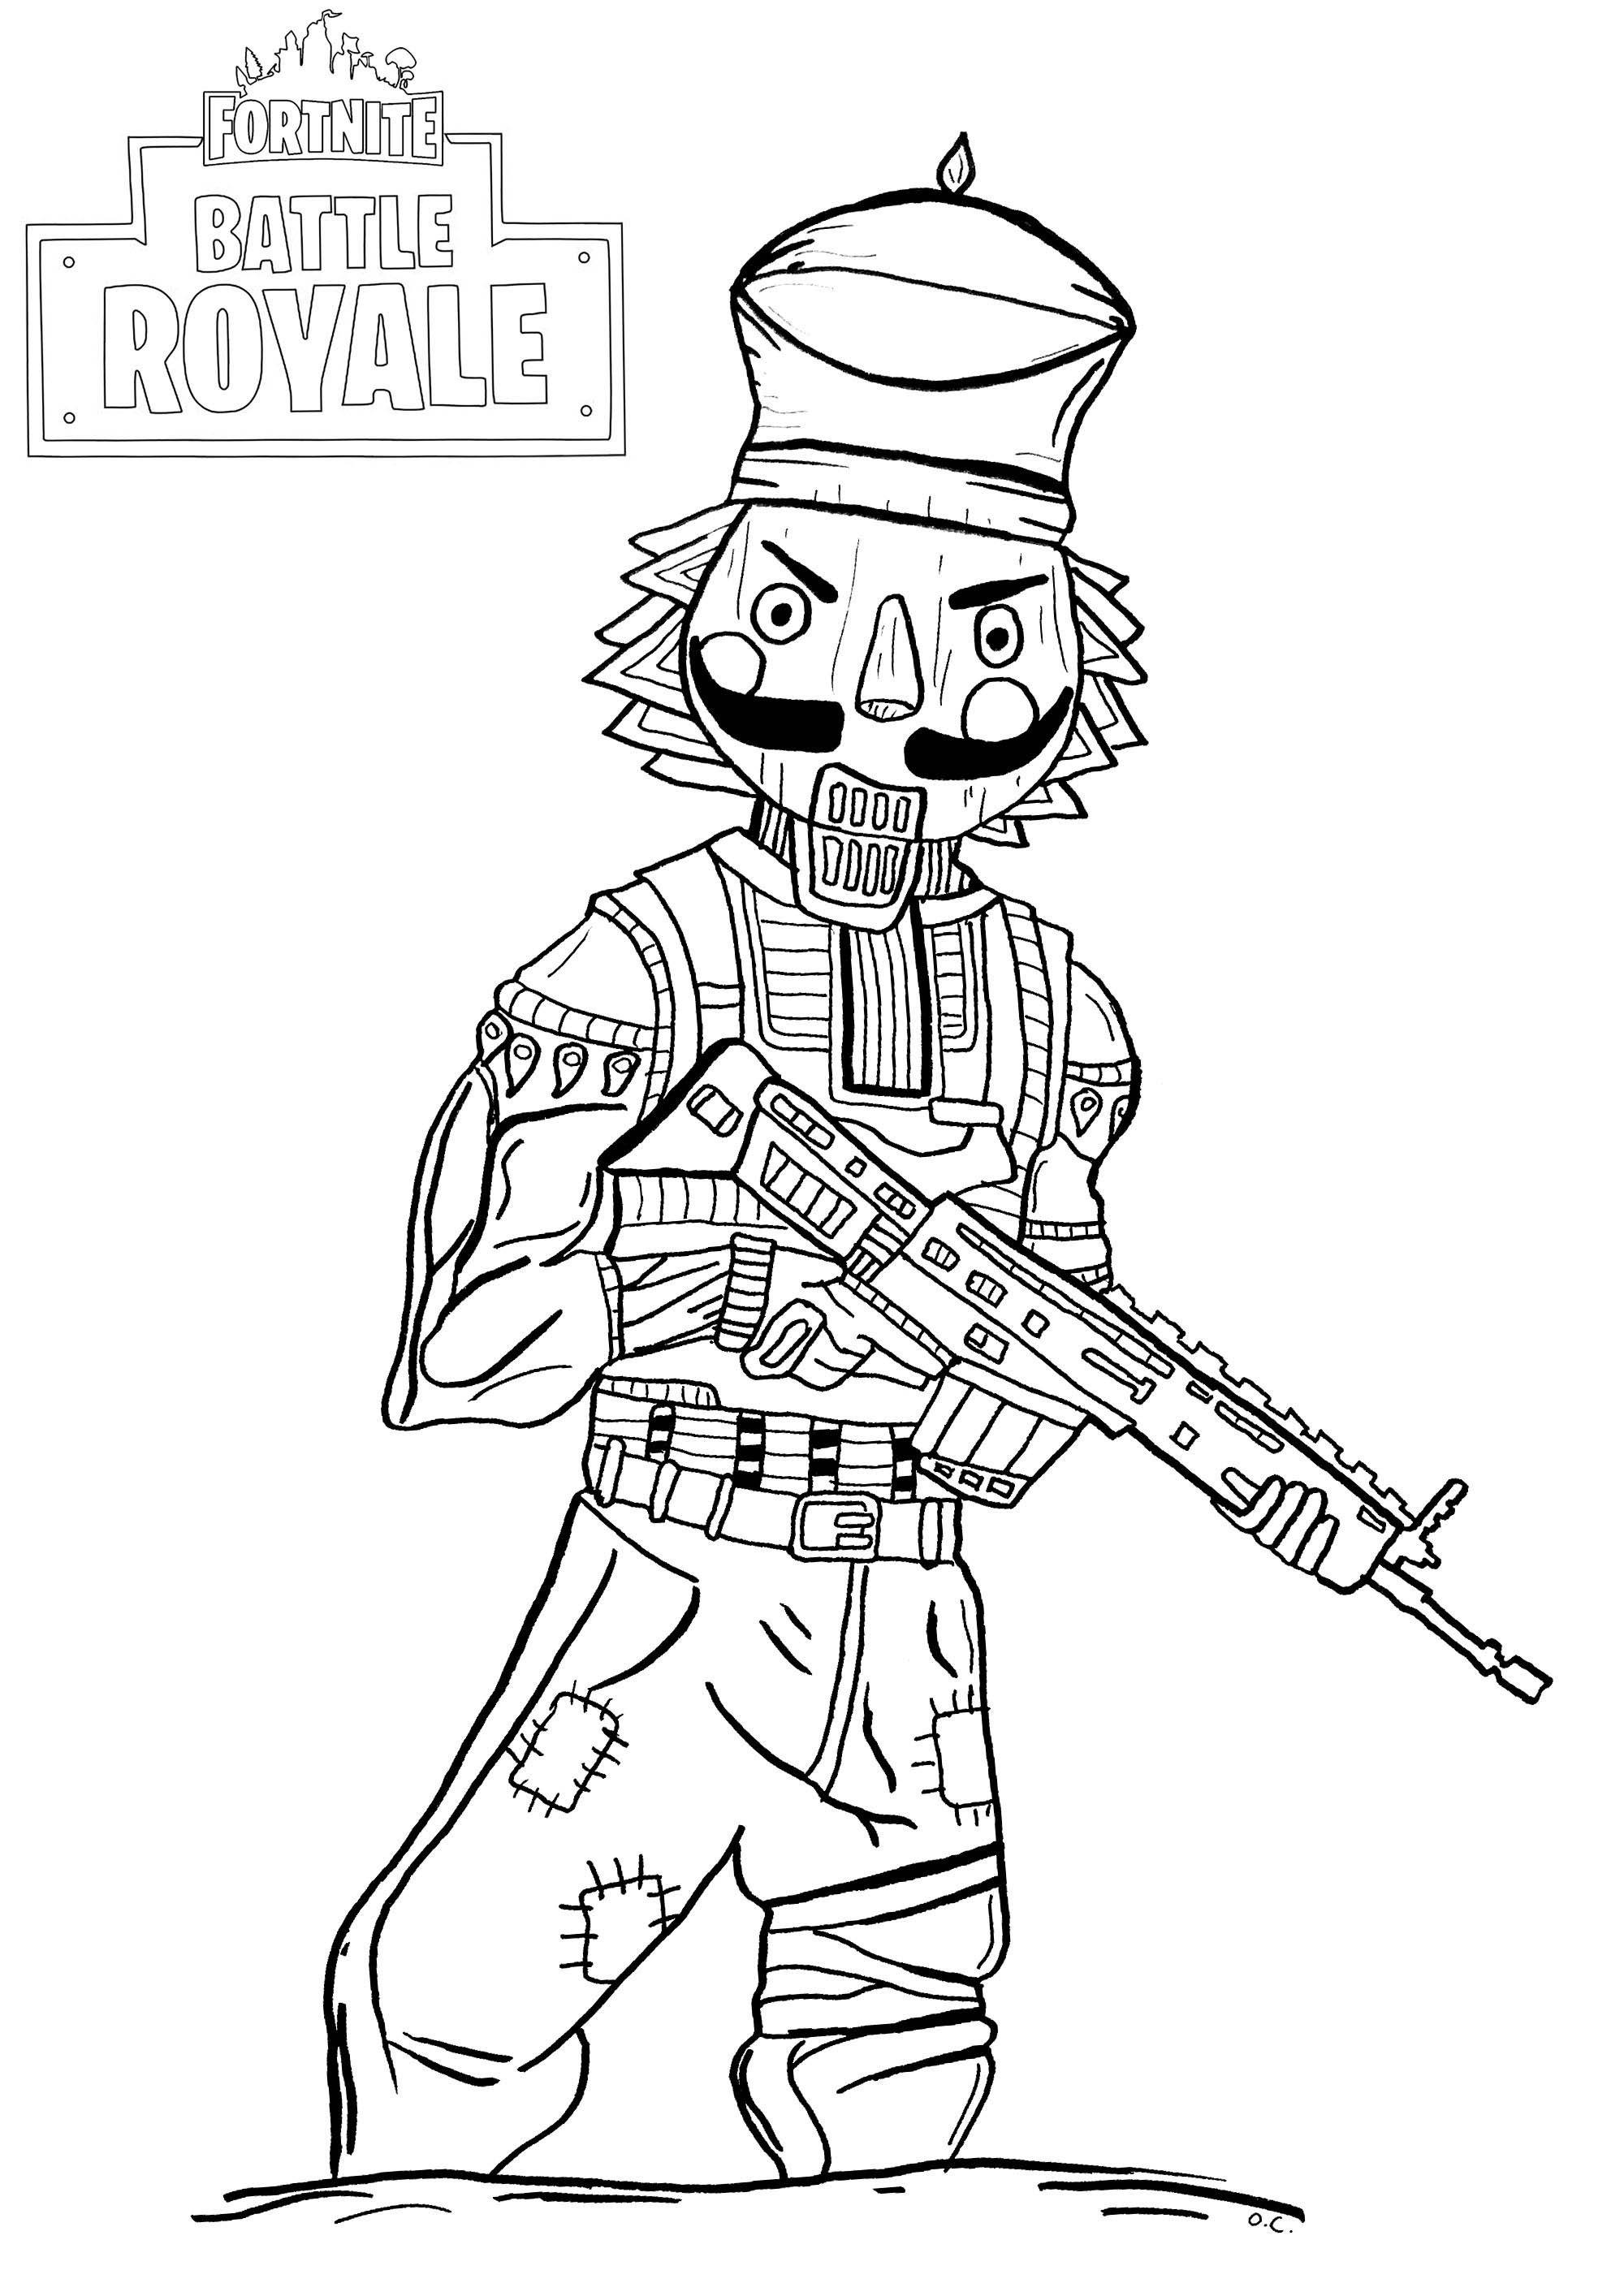 Fortnite Battle Royale : Crackshot - Coloriage Fortnite avec Coloriage A Imprimer Fortnite